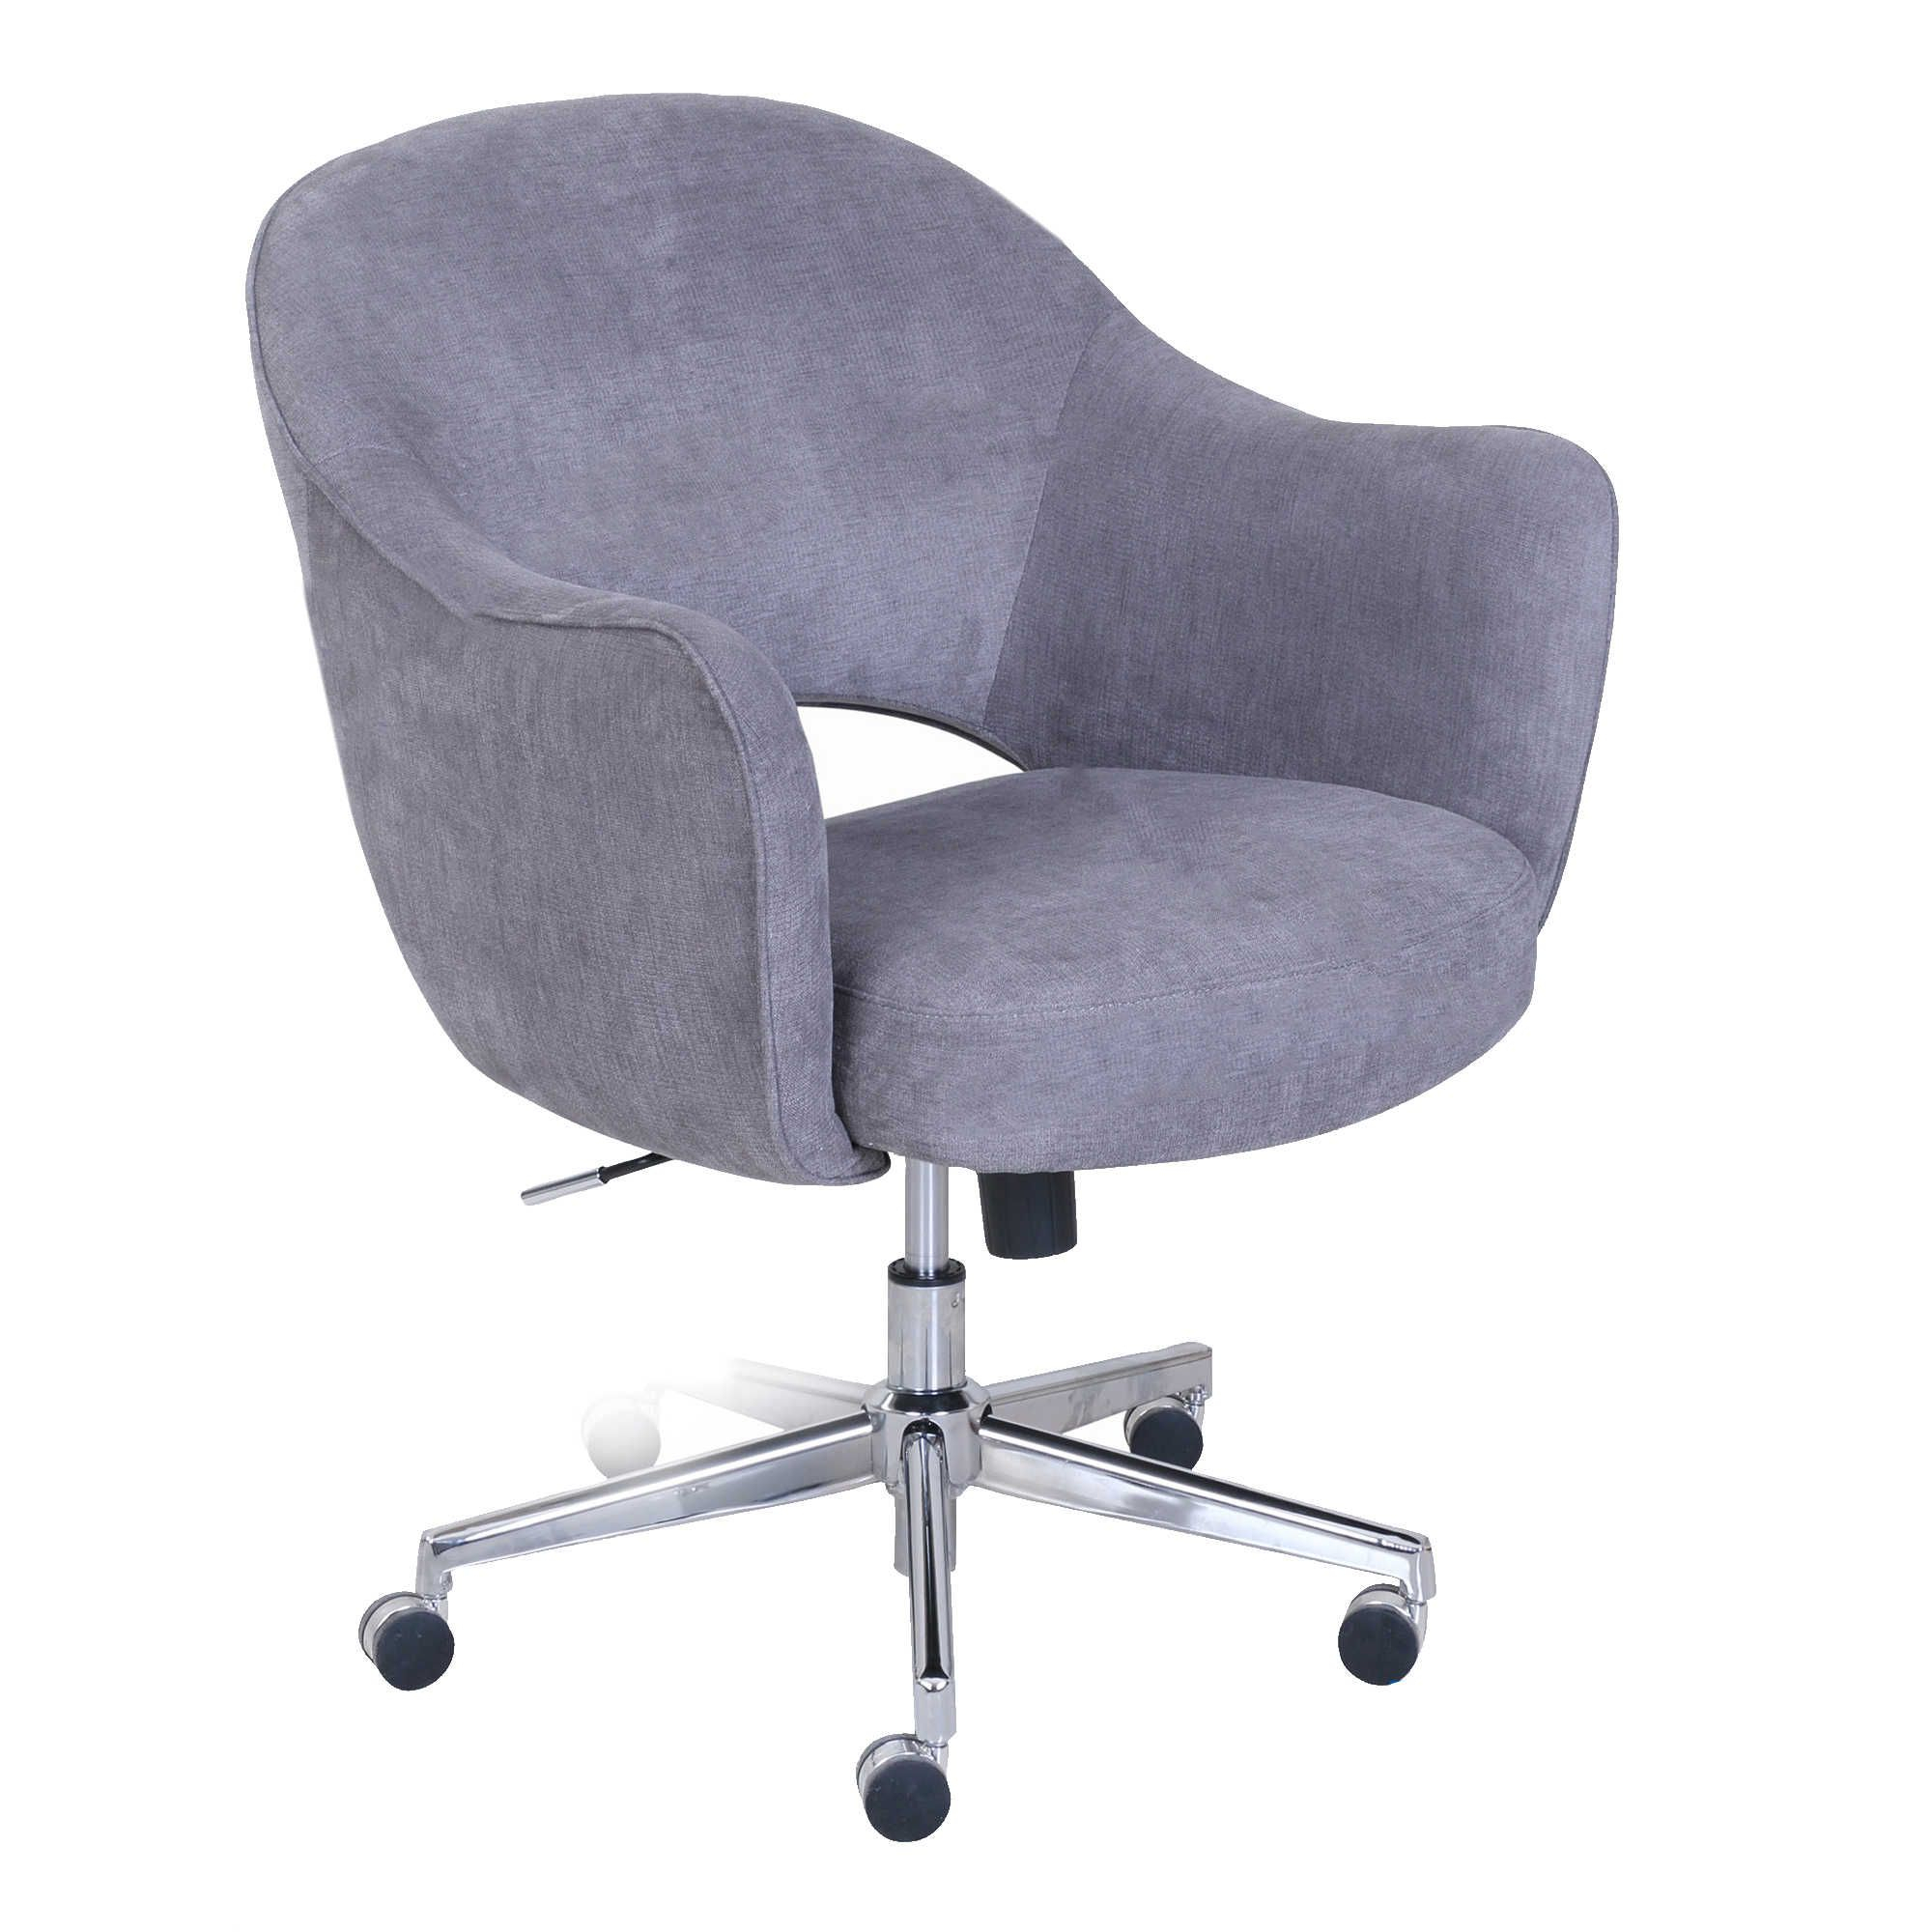 Serta® Valetta Home Office Chair In Dovetail Grey | Memory Foam With Mercer Foam Swivel Chairs (View 16 of 25)